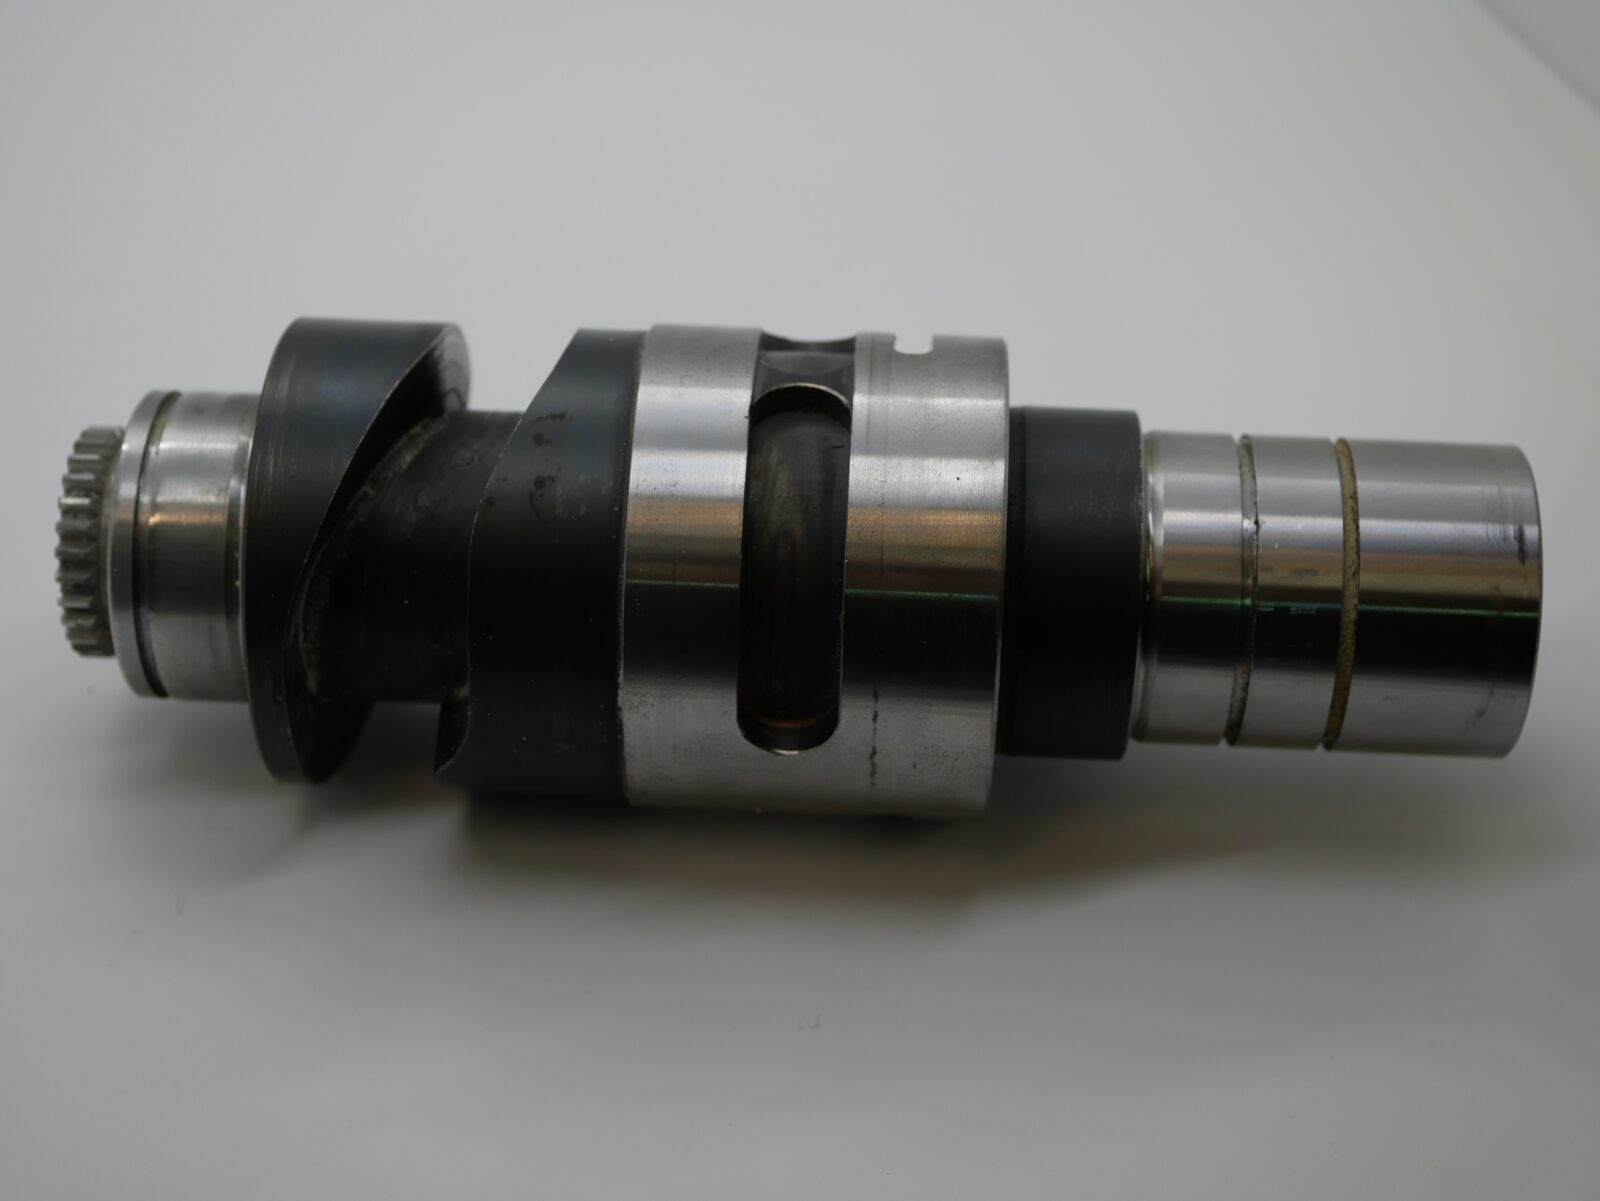 XL105 Camshaft for Pull Lay HDM: F2.072.052/09